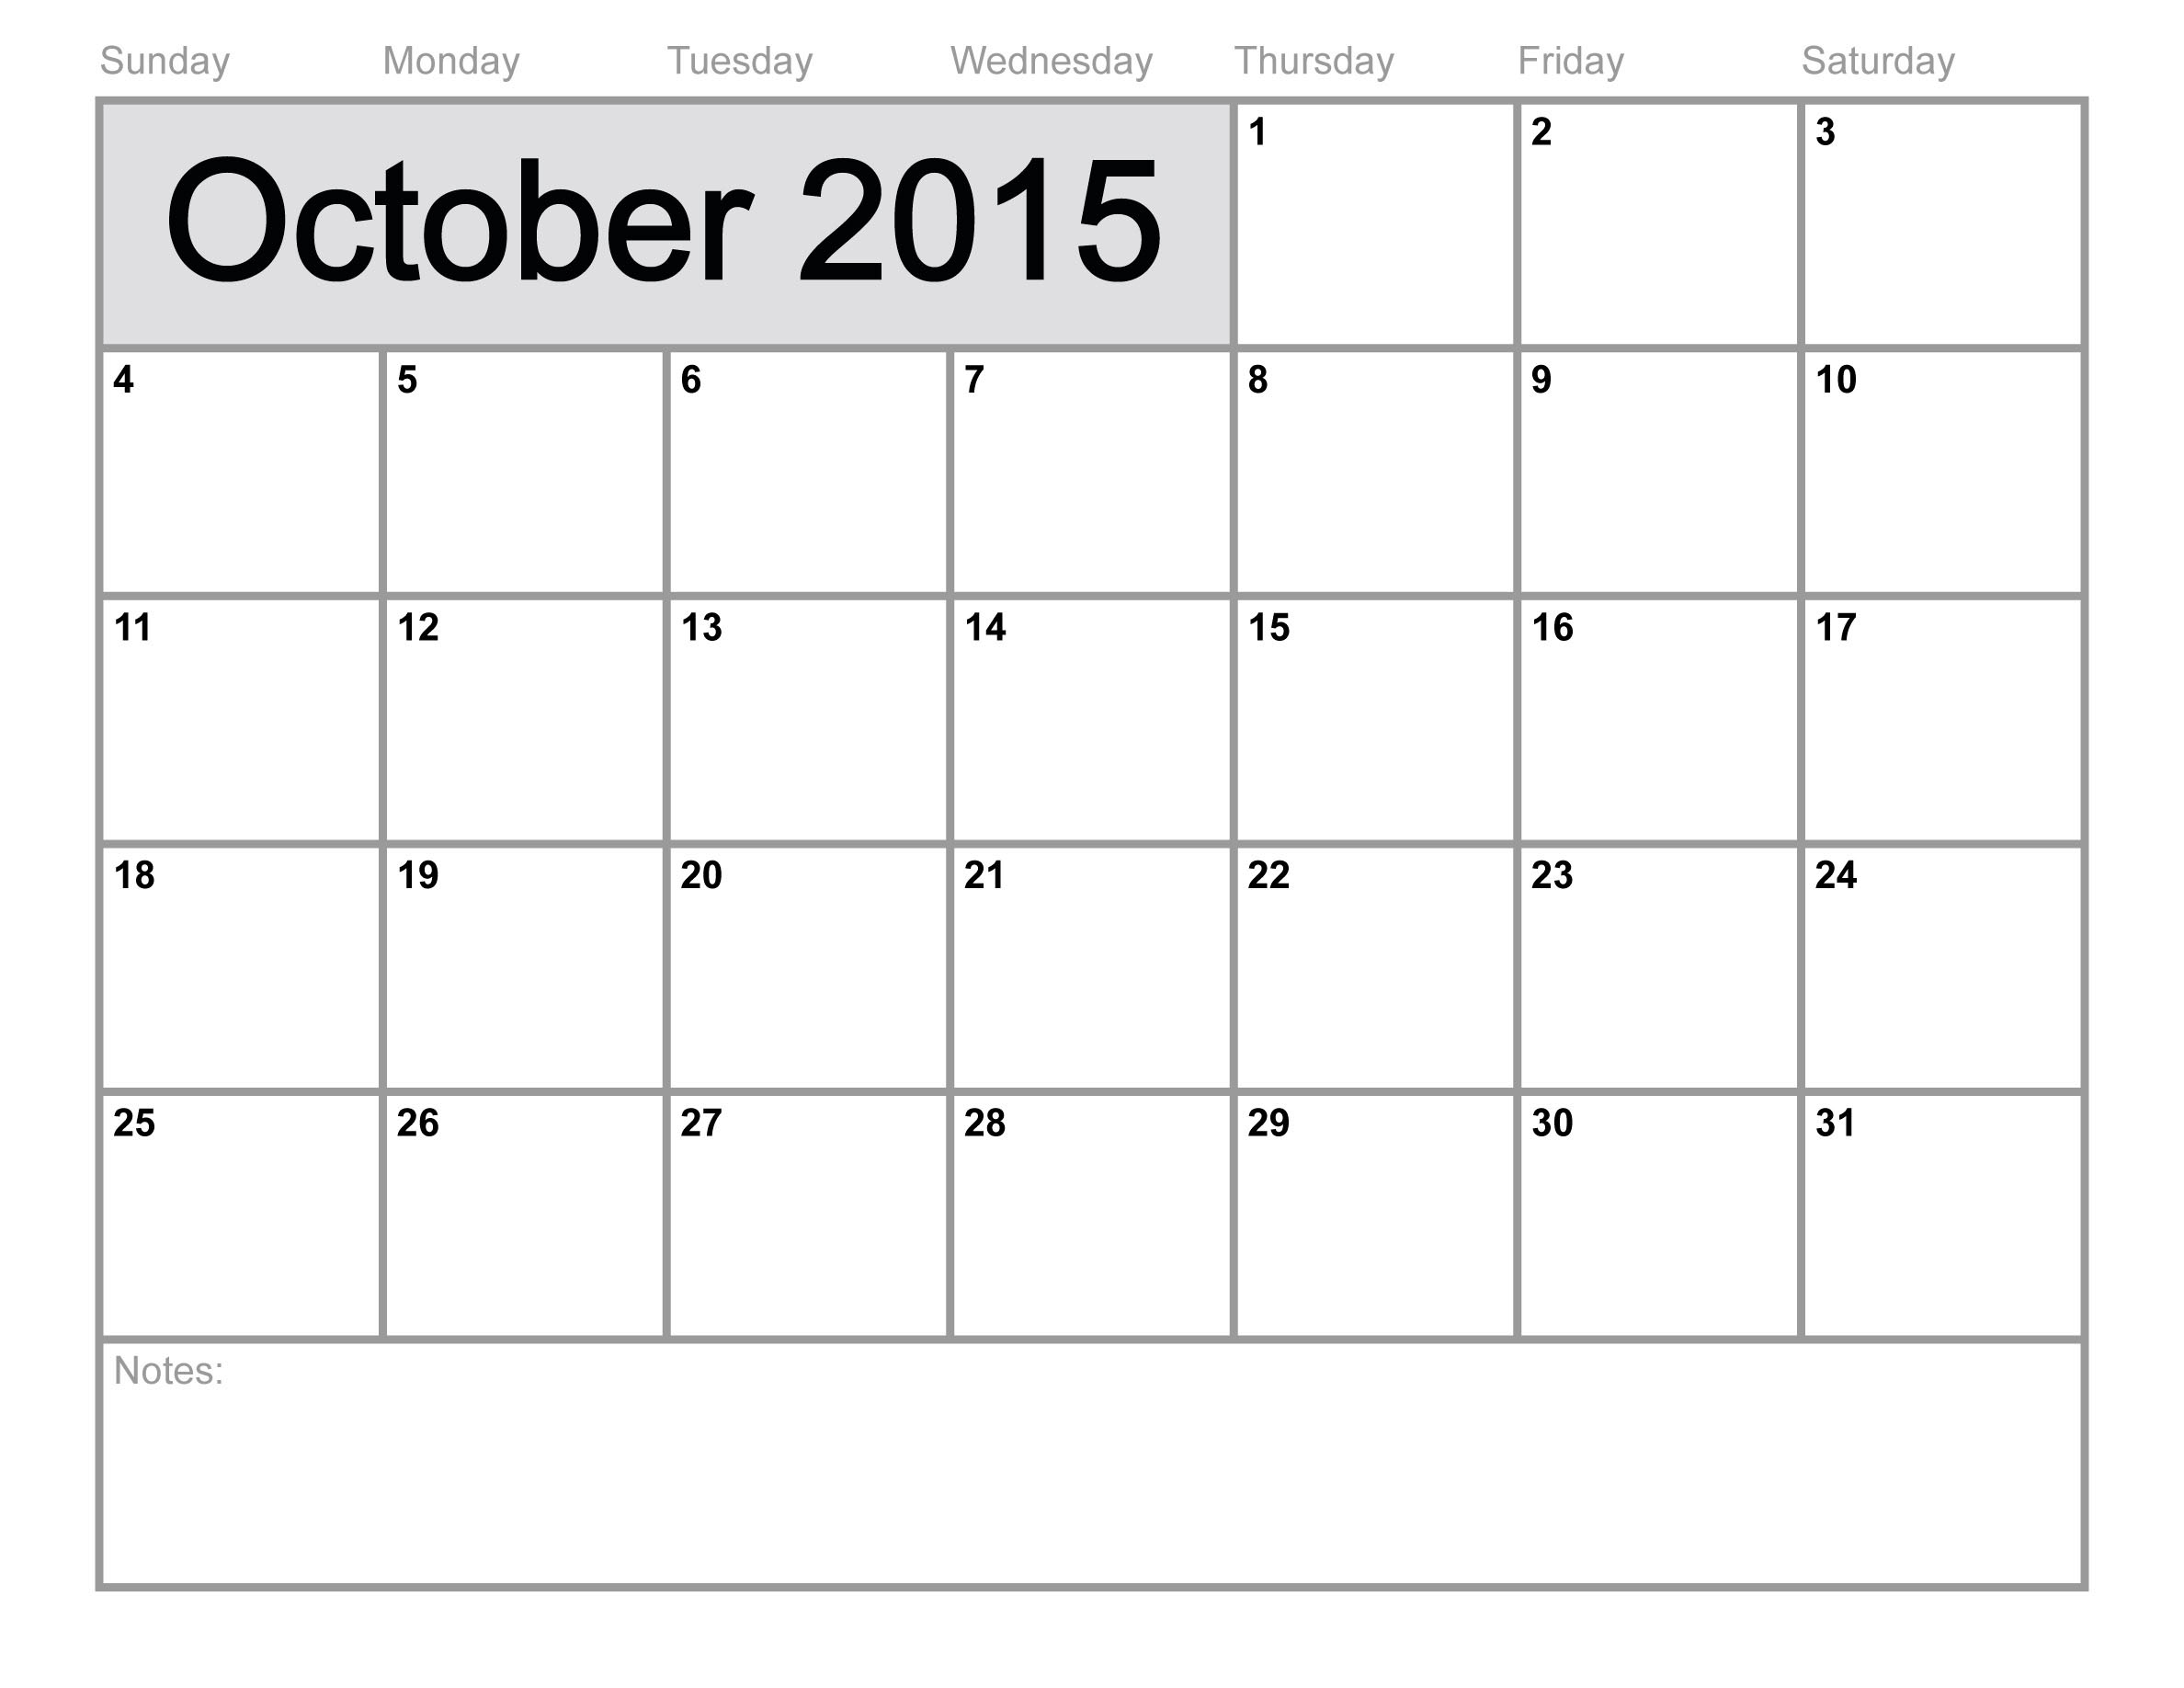 October 2015 Calendar Philippines, Tumblr, Pictures, Images.